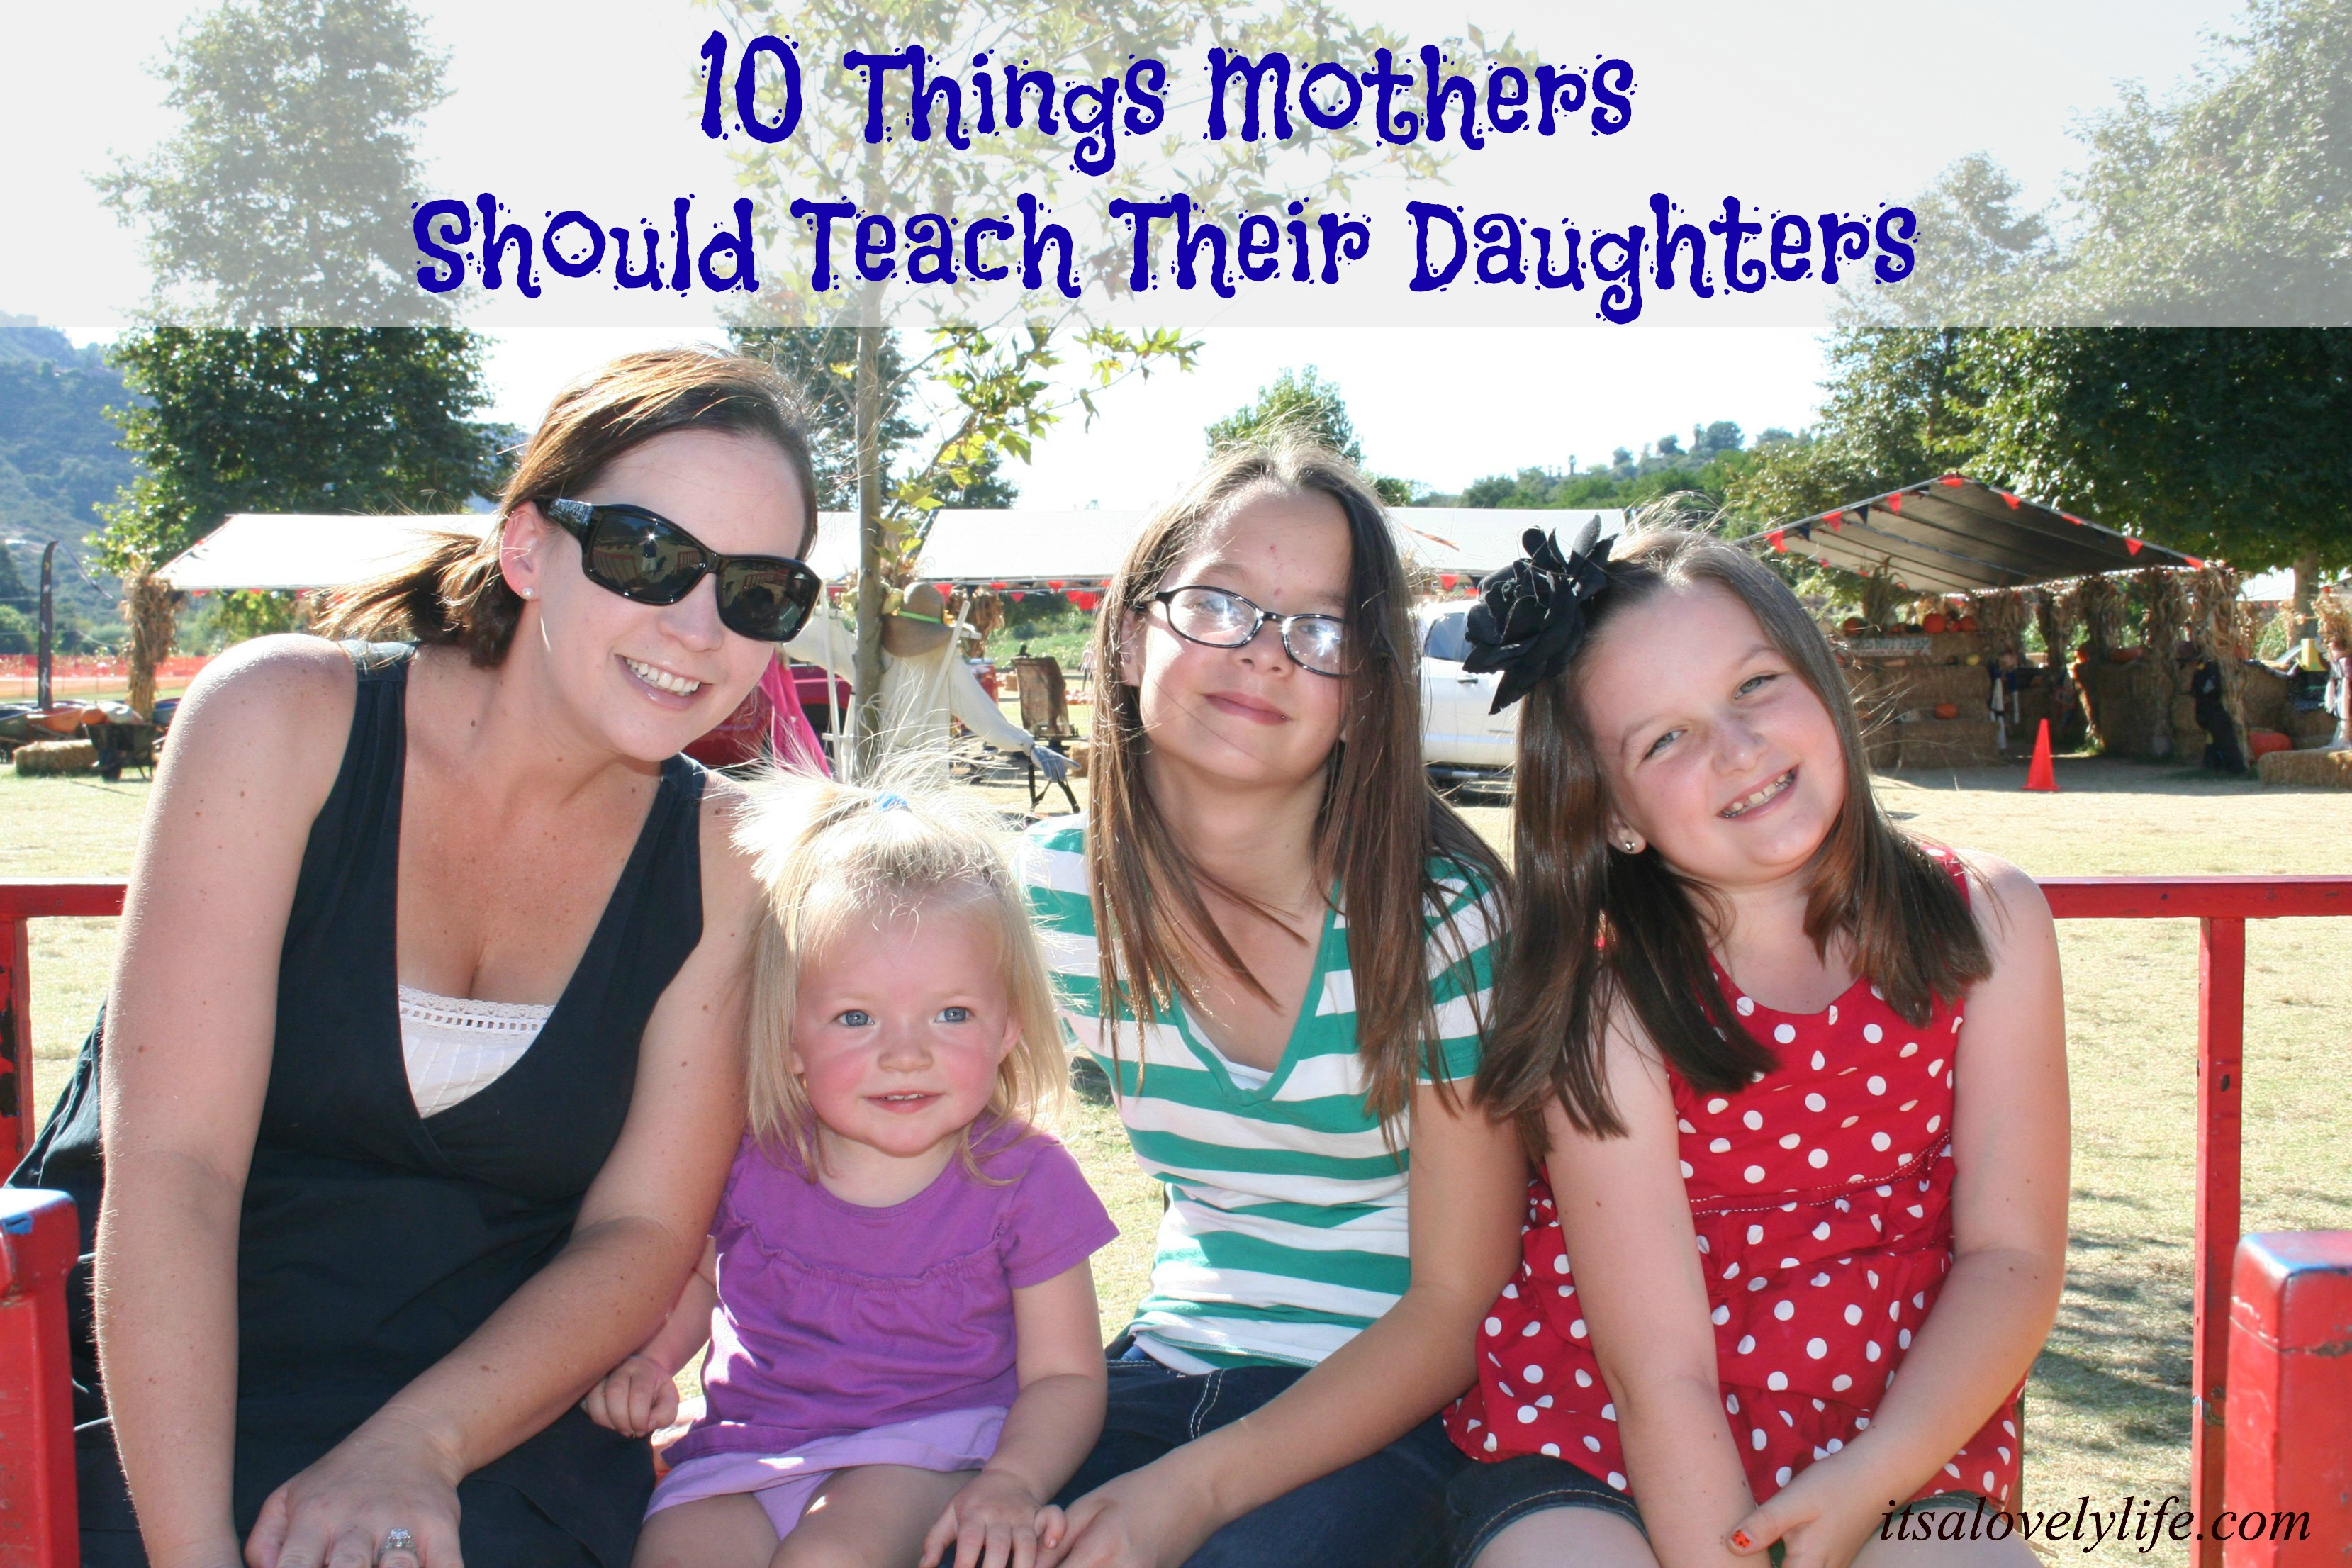 Mothers teach daughters